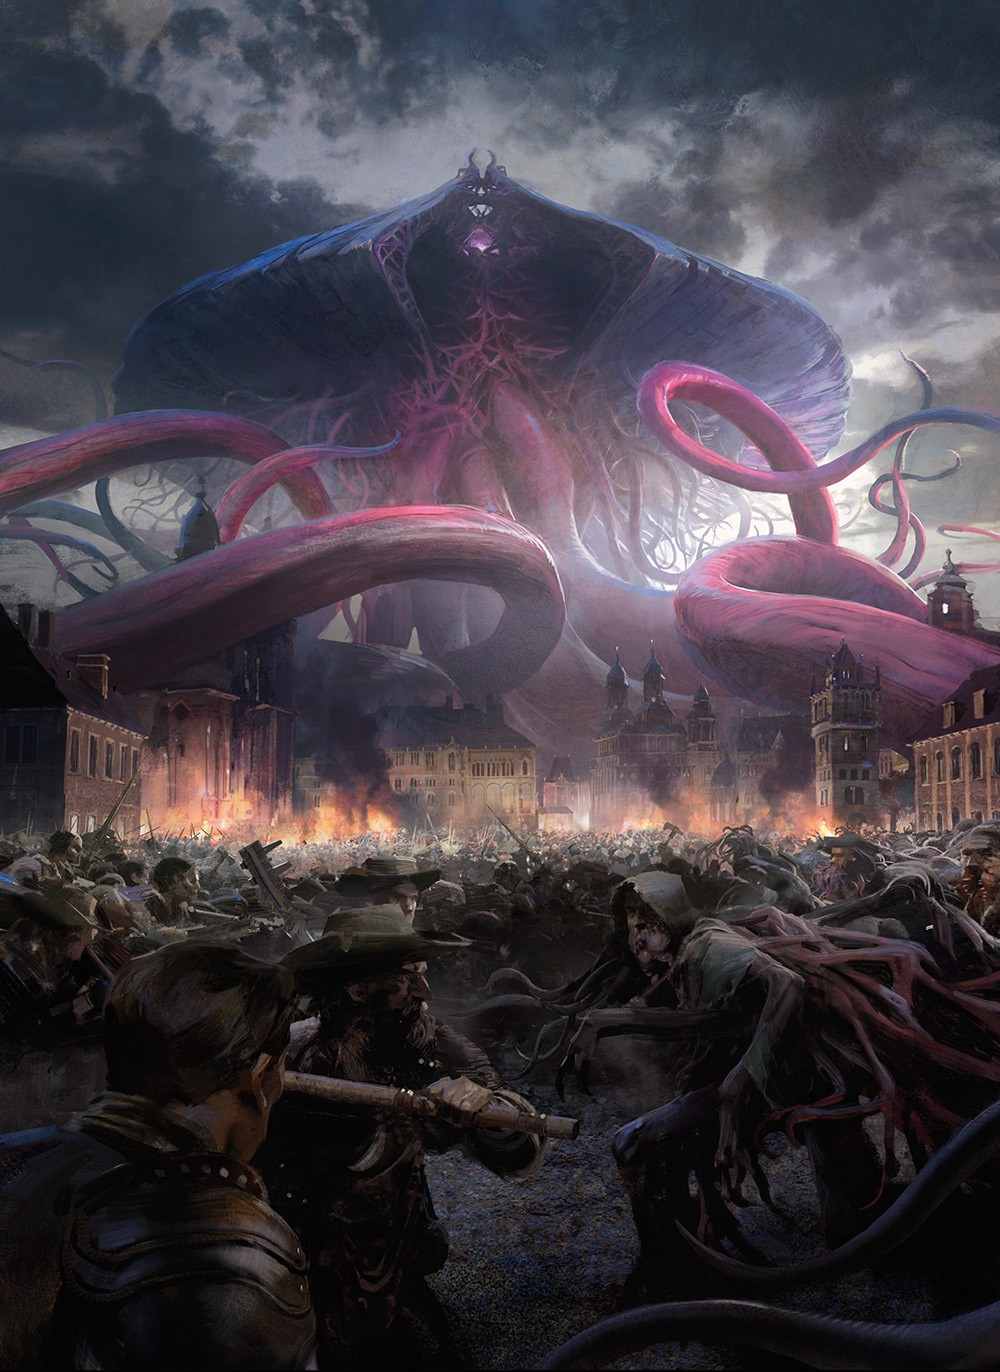 Emrakul the Promised End - Jaime Jones